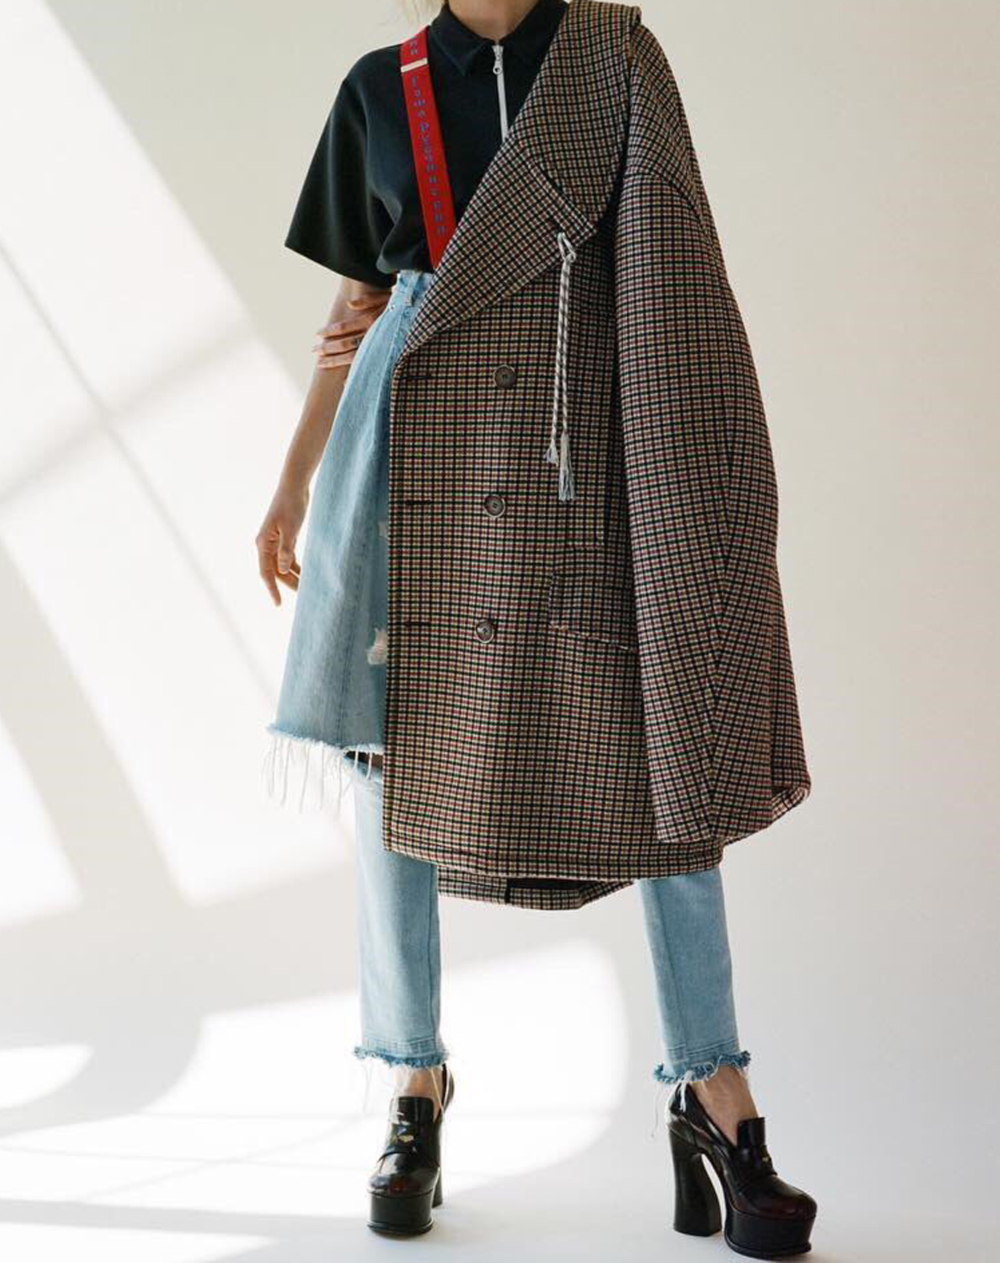 Balenciaga, Celine, Trend, Check, Chequered, Houndstooth, Runway, Street Style, 2016, Oracle Fox